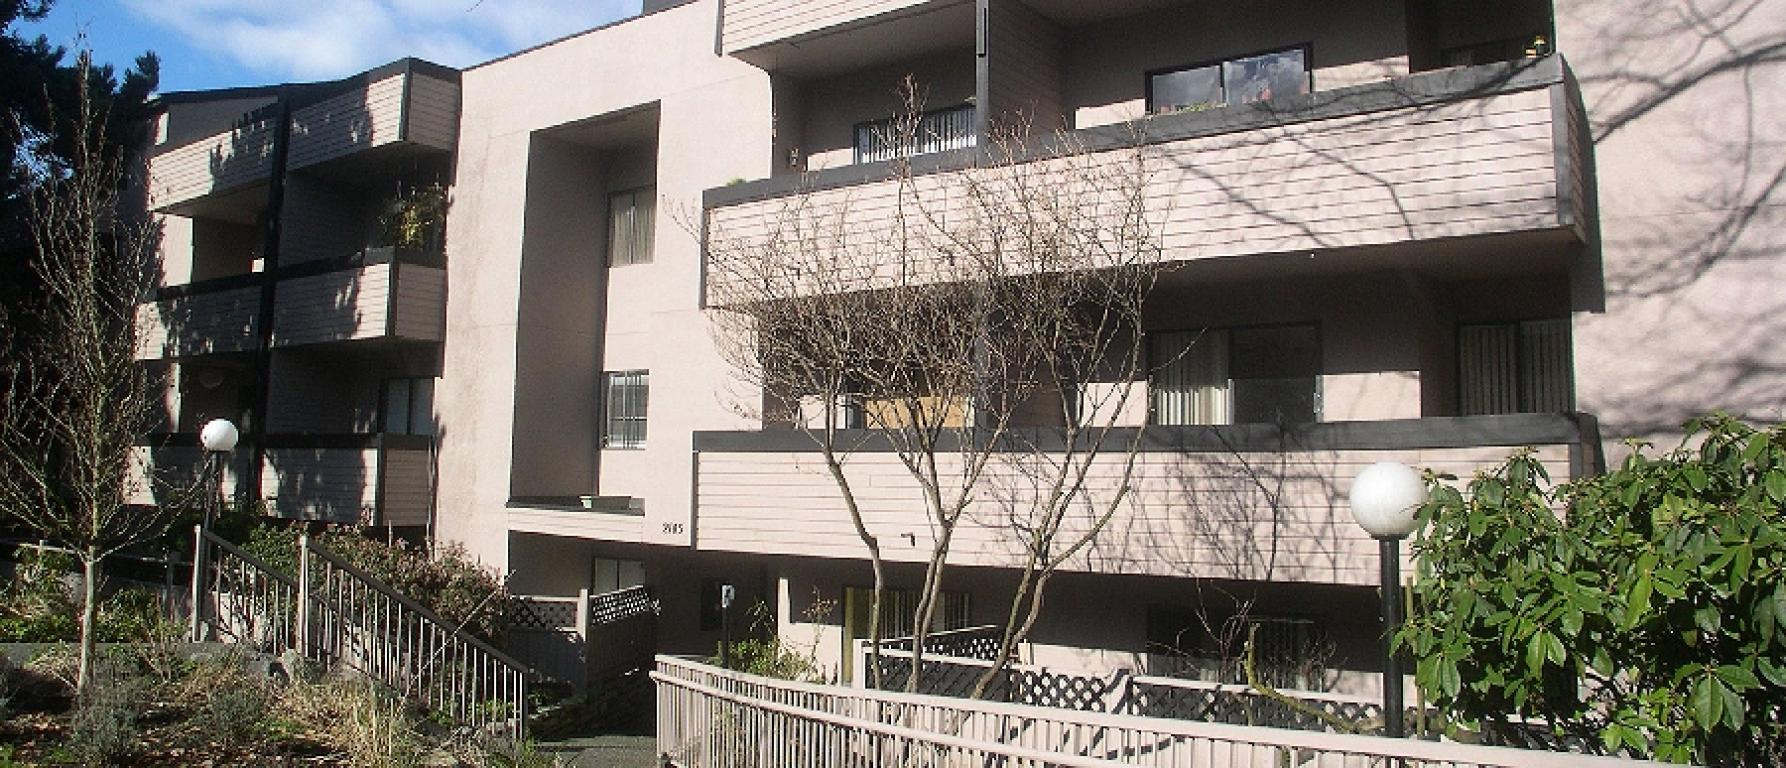 Yorkshire Rental Apartments, 2145 York Ave, Vancouver, B.C ...